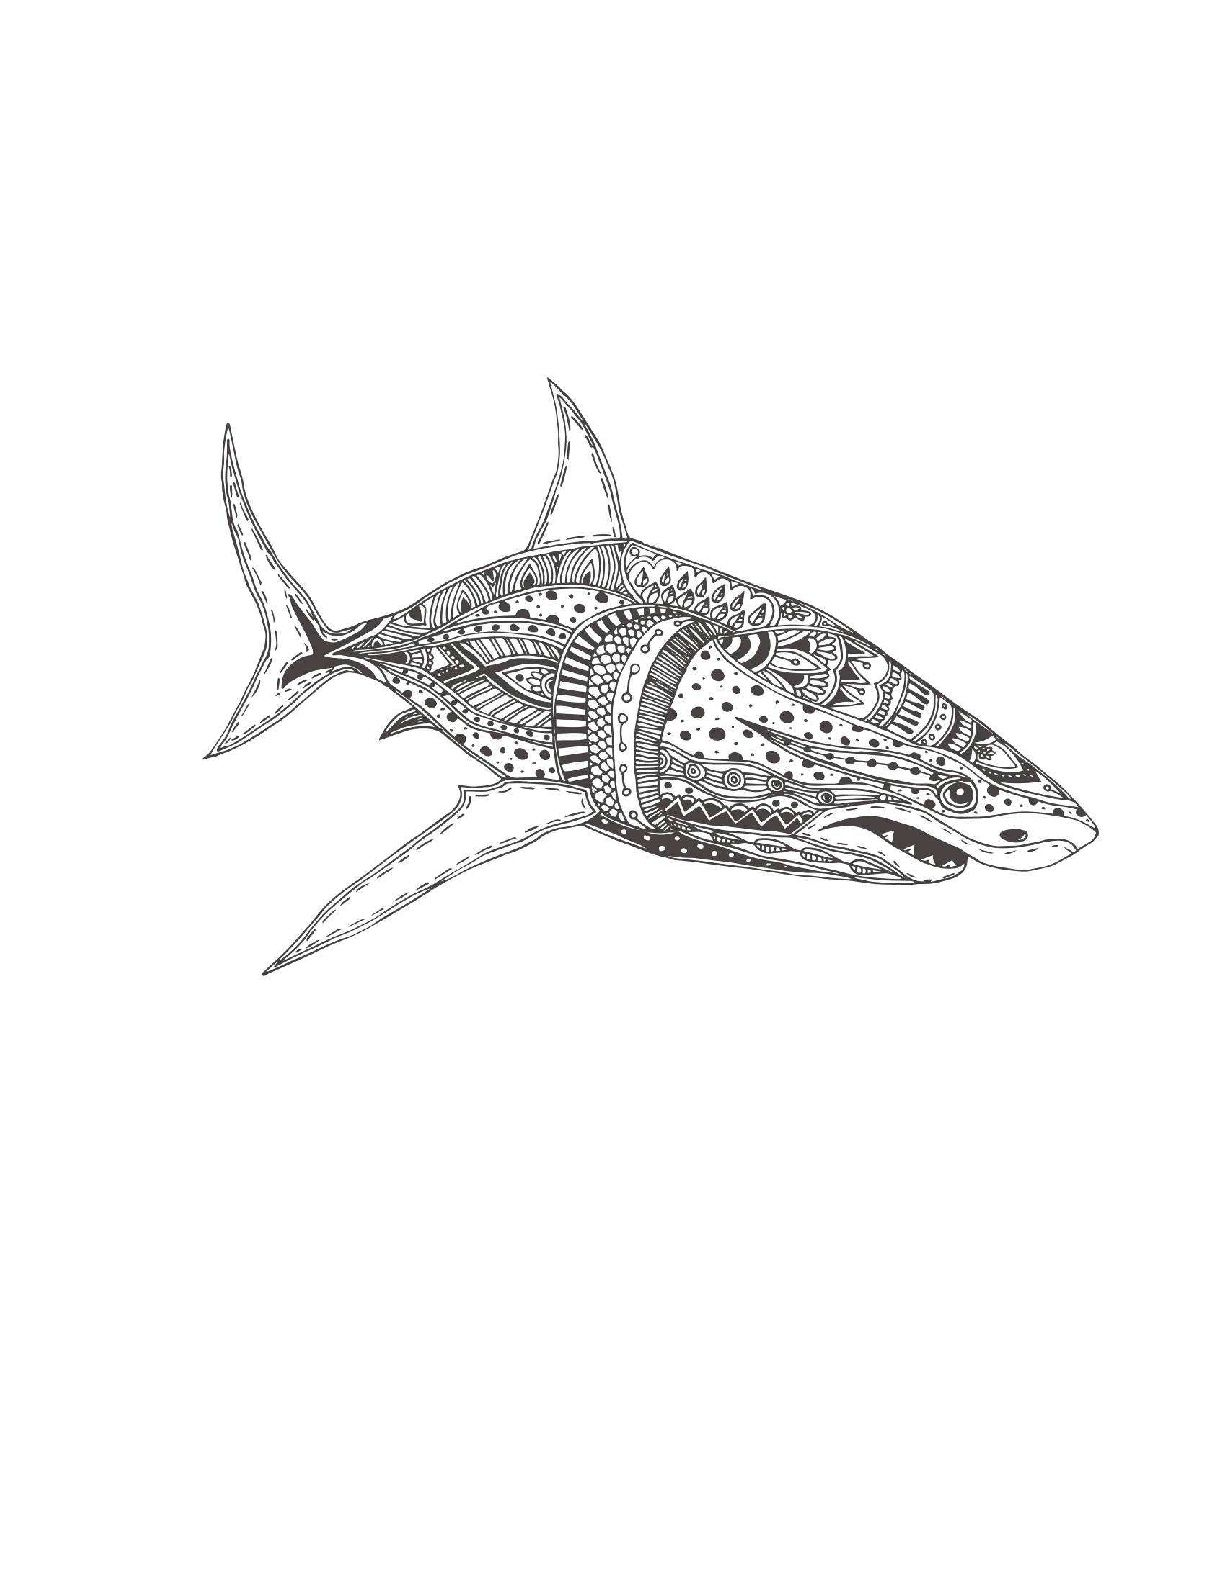 Great white shark coloring page for adults | Shark coloring ...